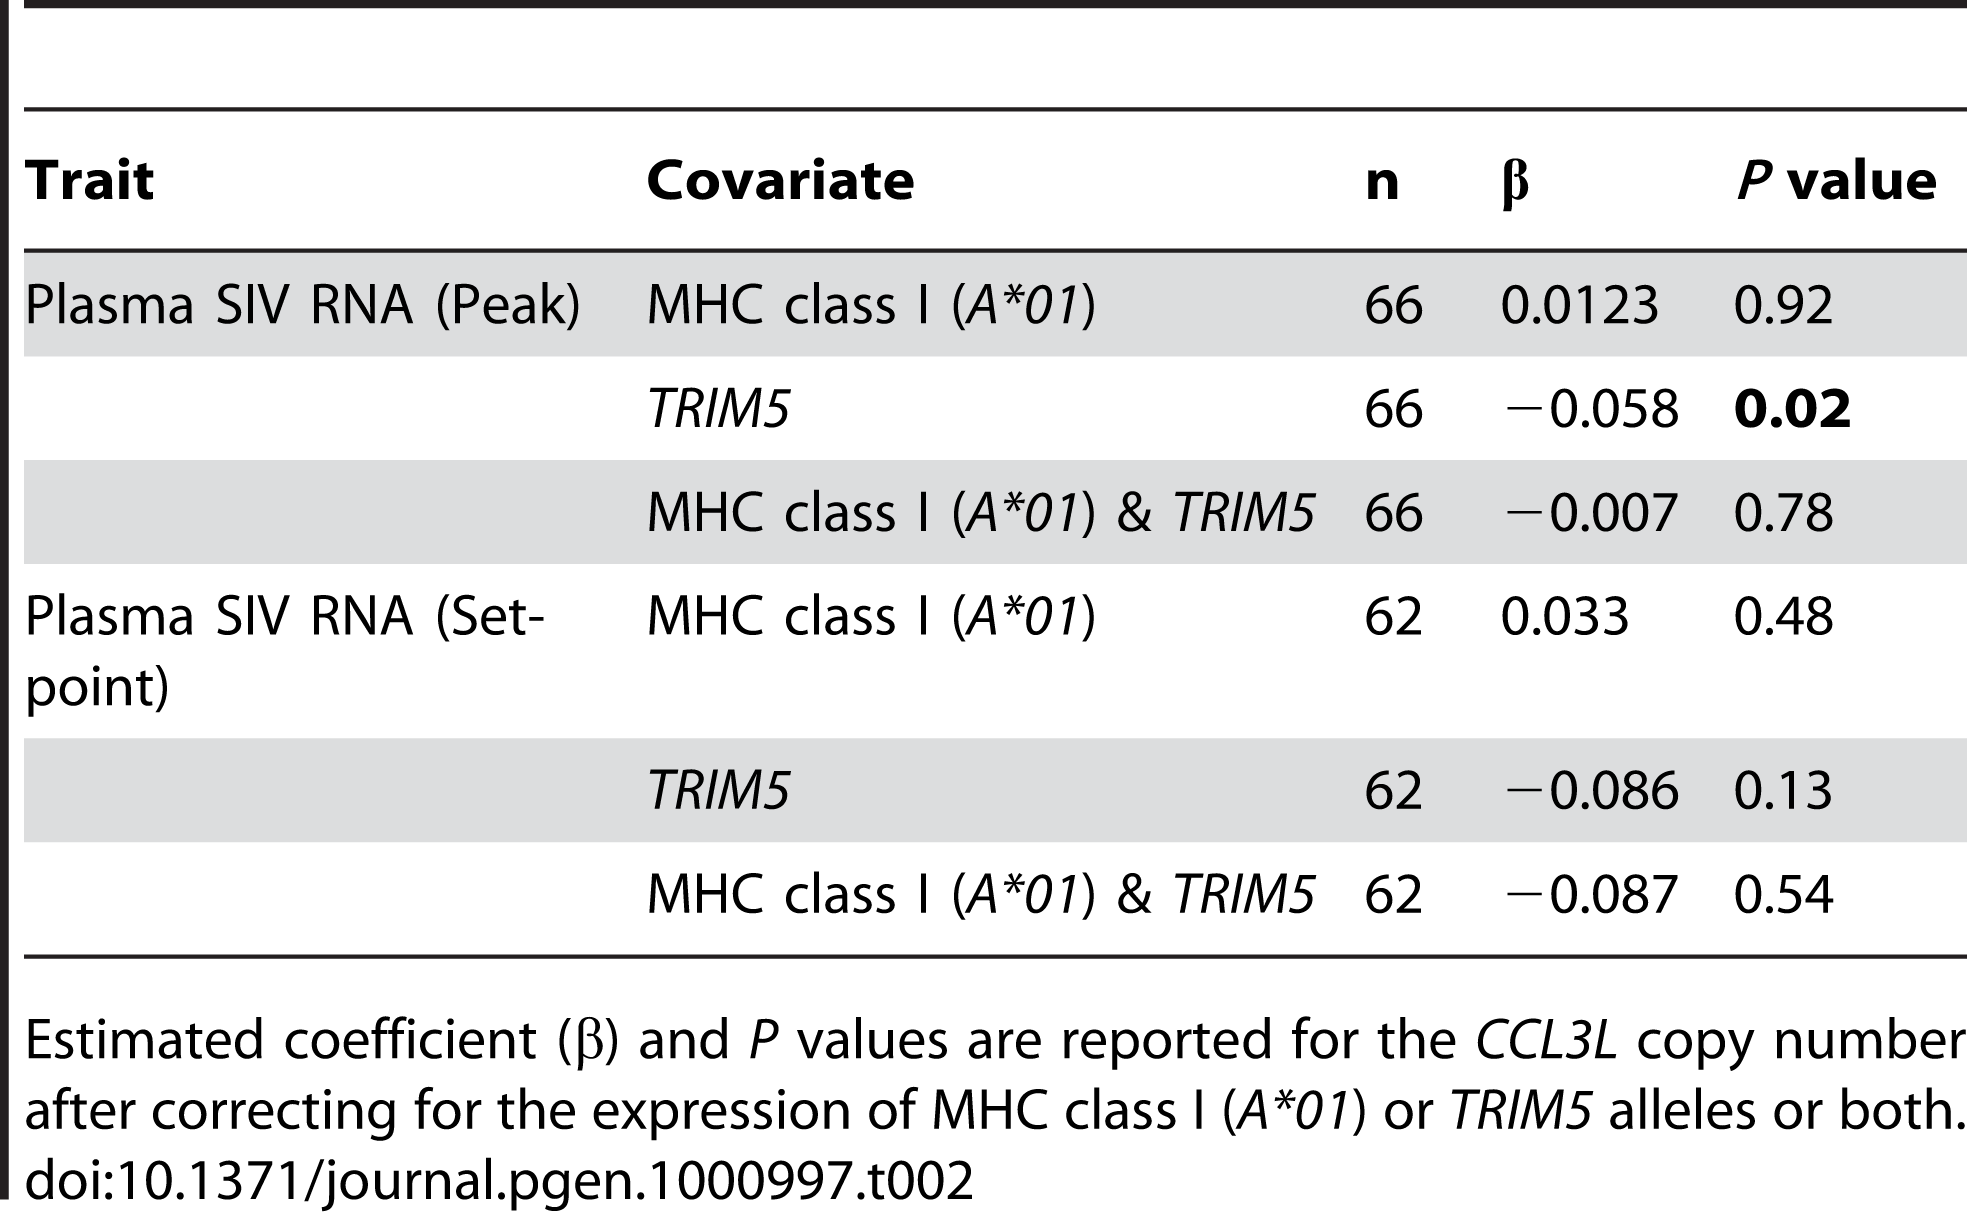 Effect of <i>CCL3L</i> copy number in regressions with several covariates.